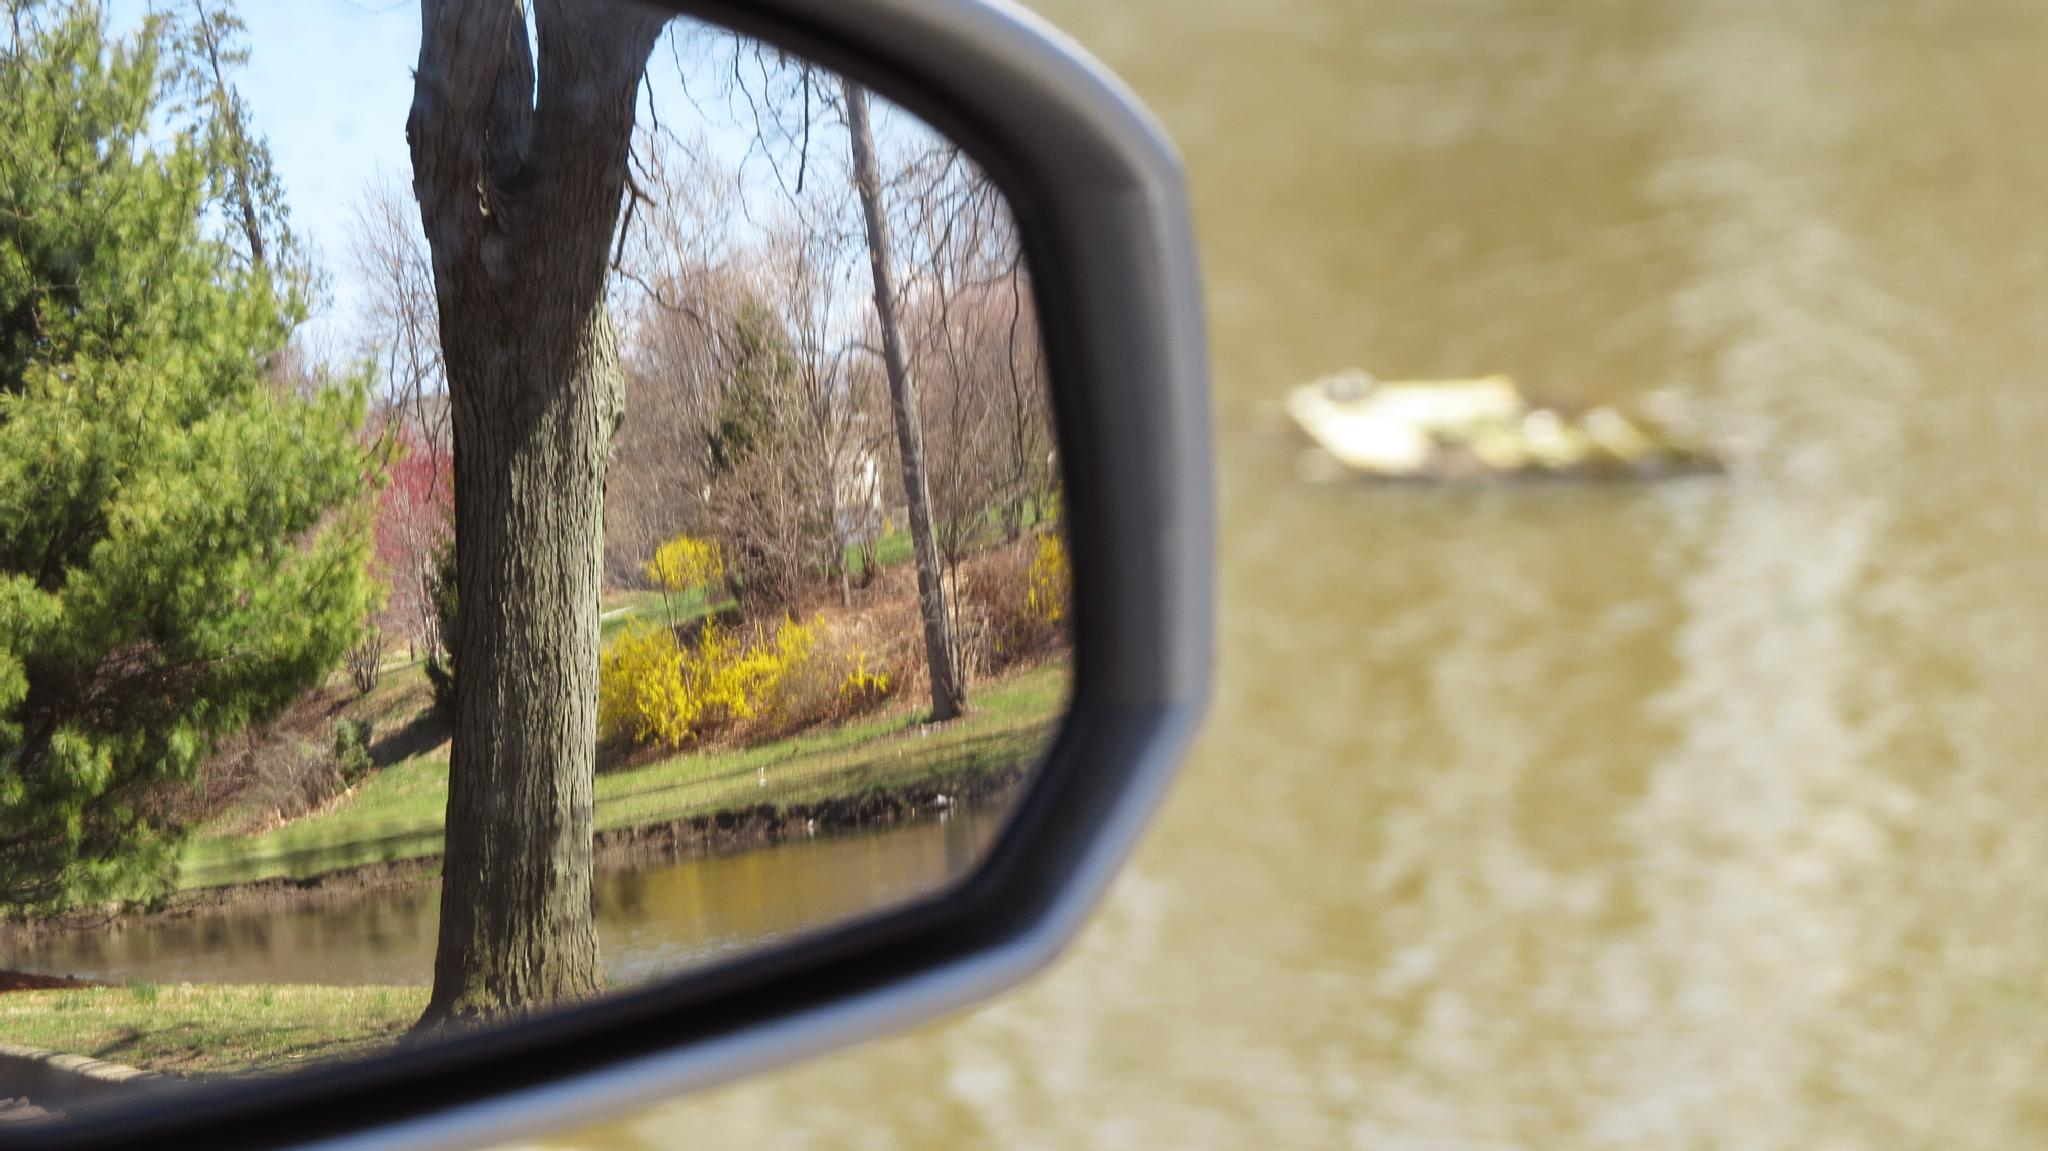 Can You Guess The Focal Point - 2 - Tree, Side Mirror, Pond  by Alisha Mari Crawford